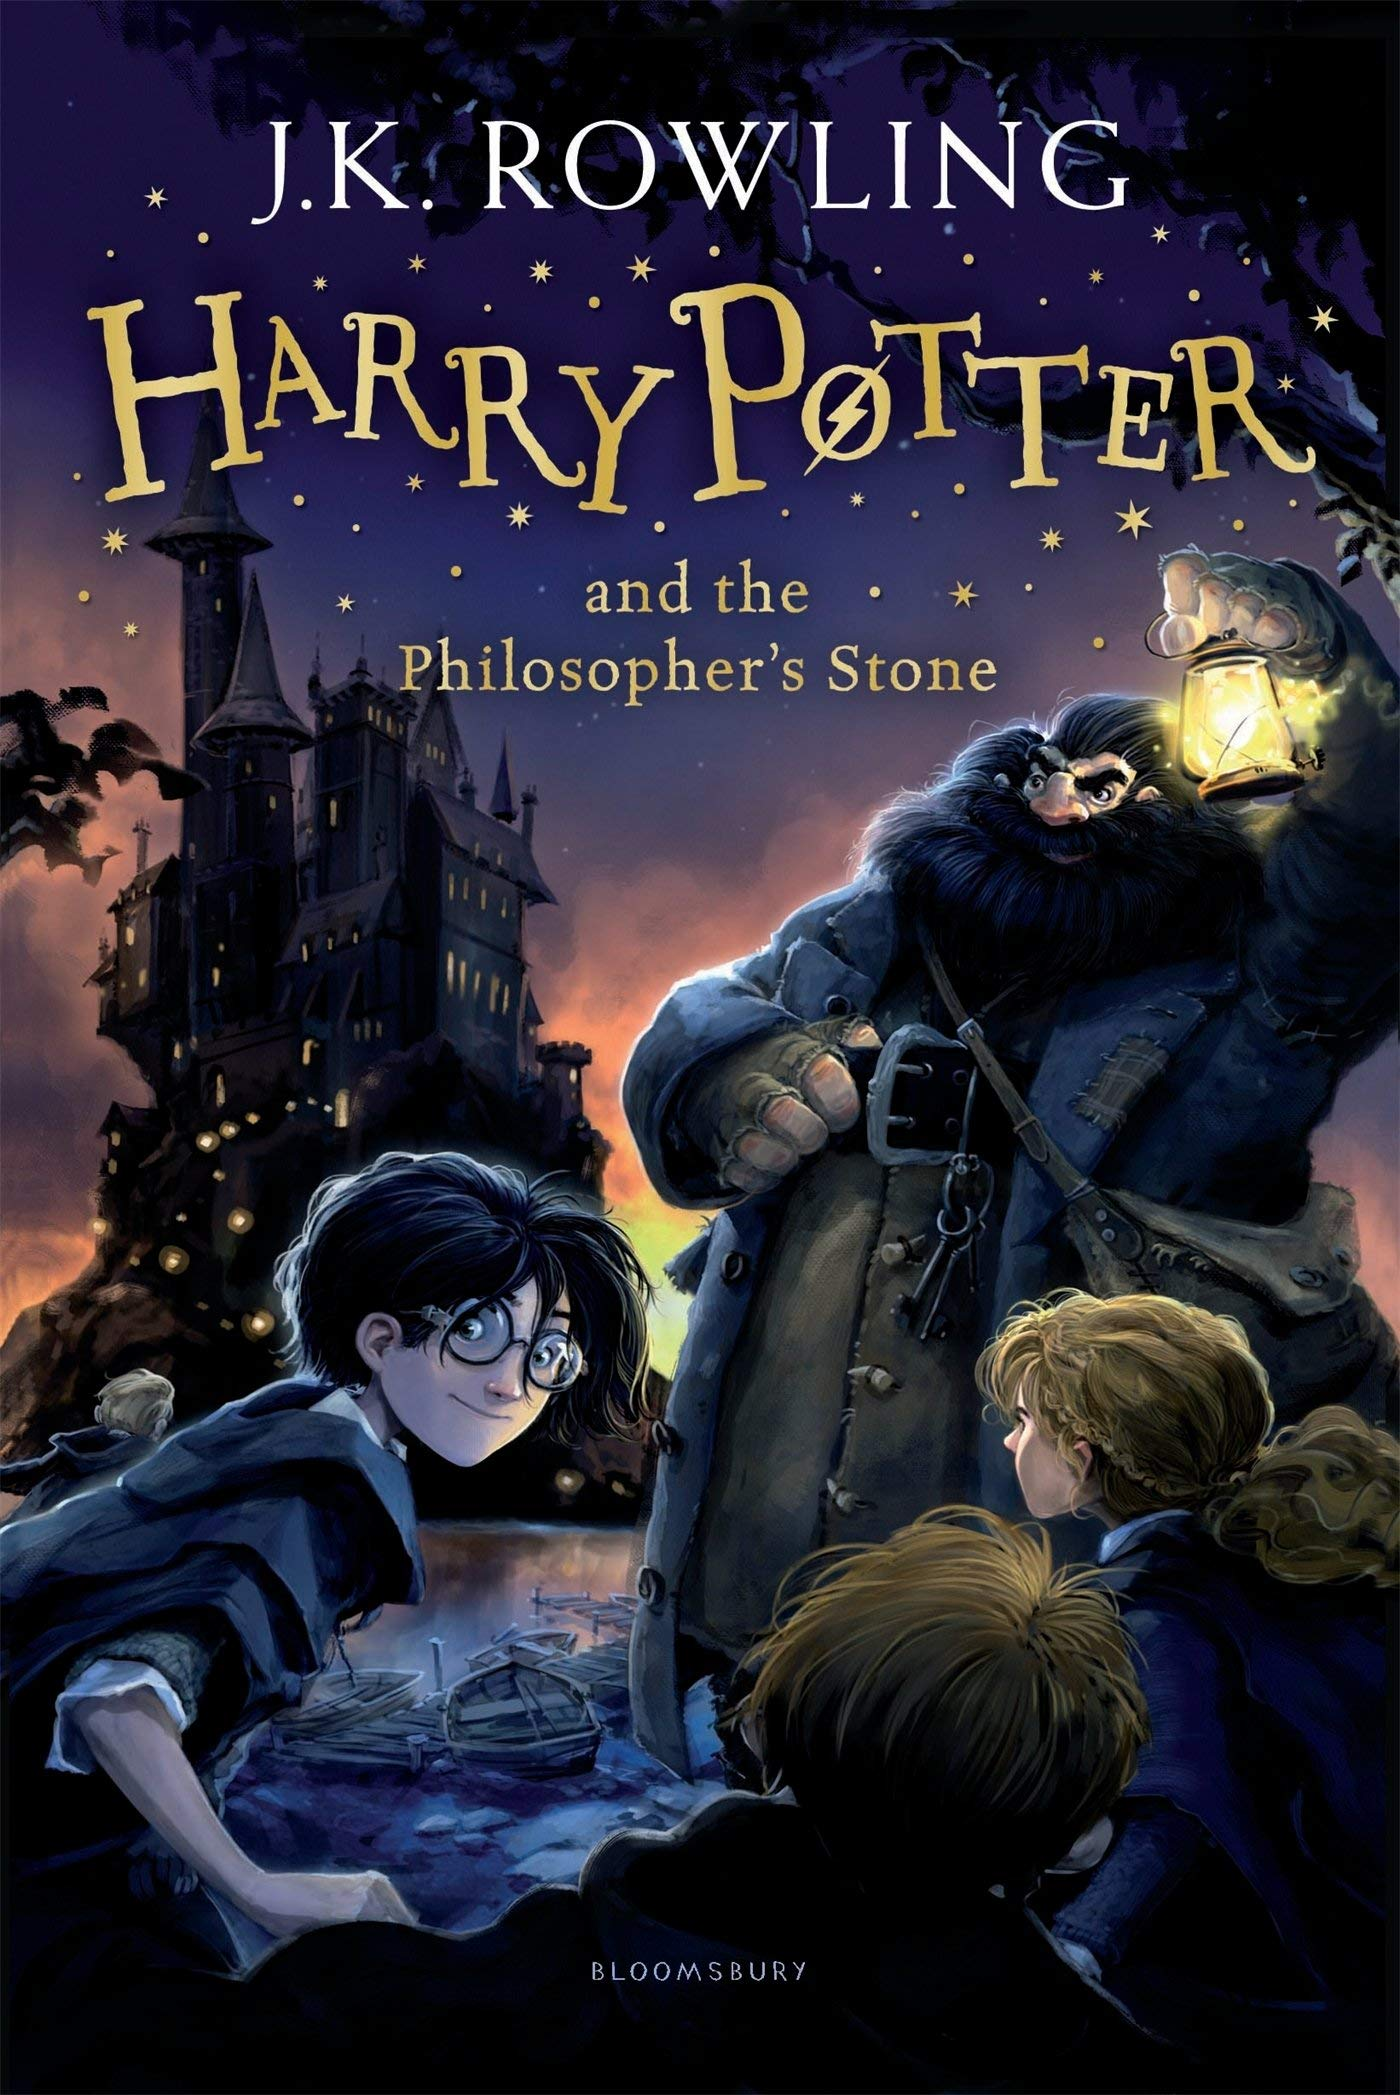 Harry Potter and the Philosopher's Stone Paperback – 3 Sep 2014 by J.K. Rowling (Author)